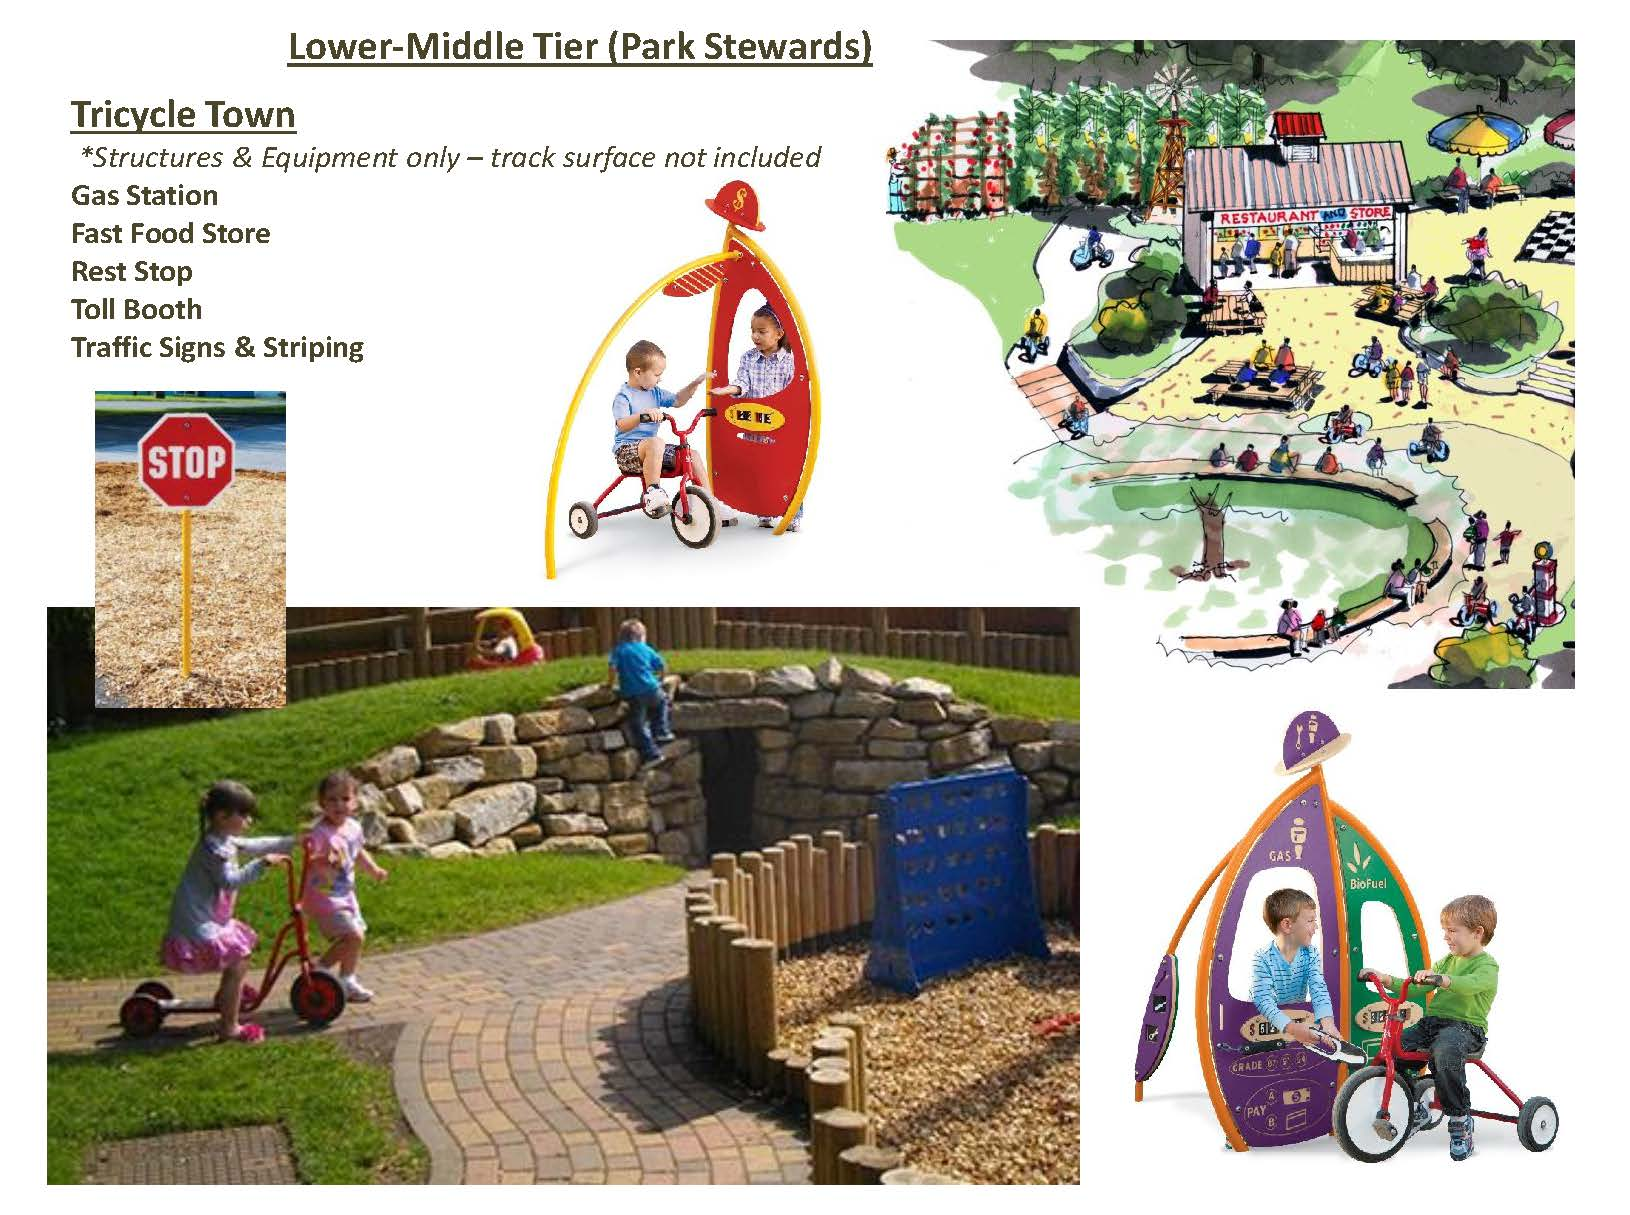 Zachary_PlaygroundPhaseII_Naming Opportunities_Page_09.jpg